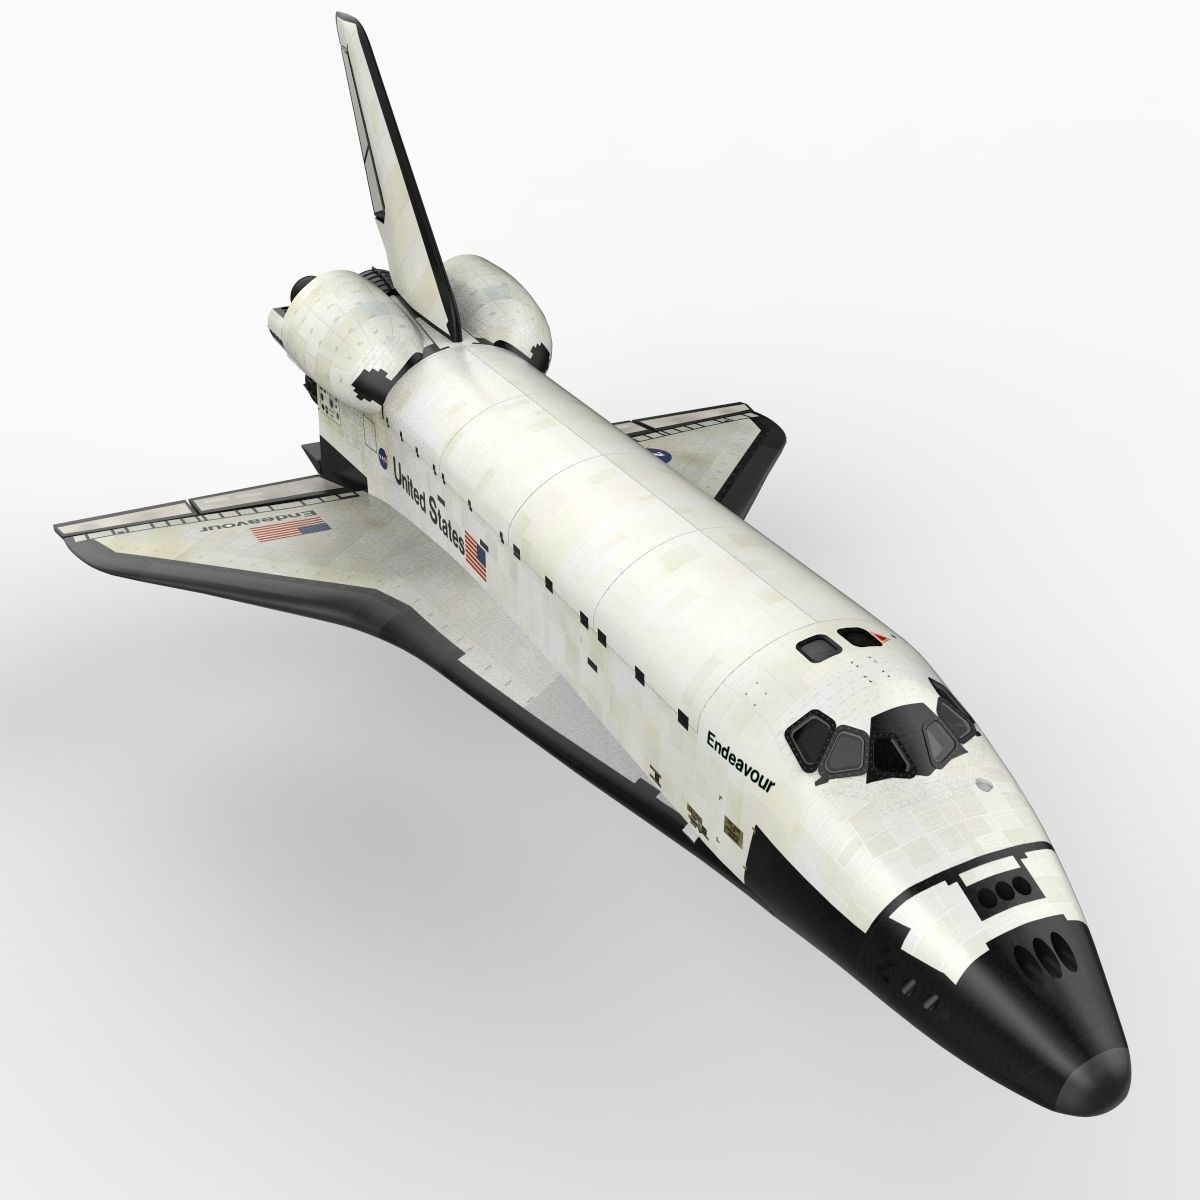 space shuttle system - photo #22